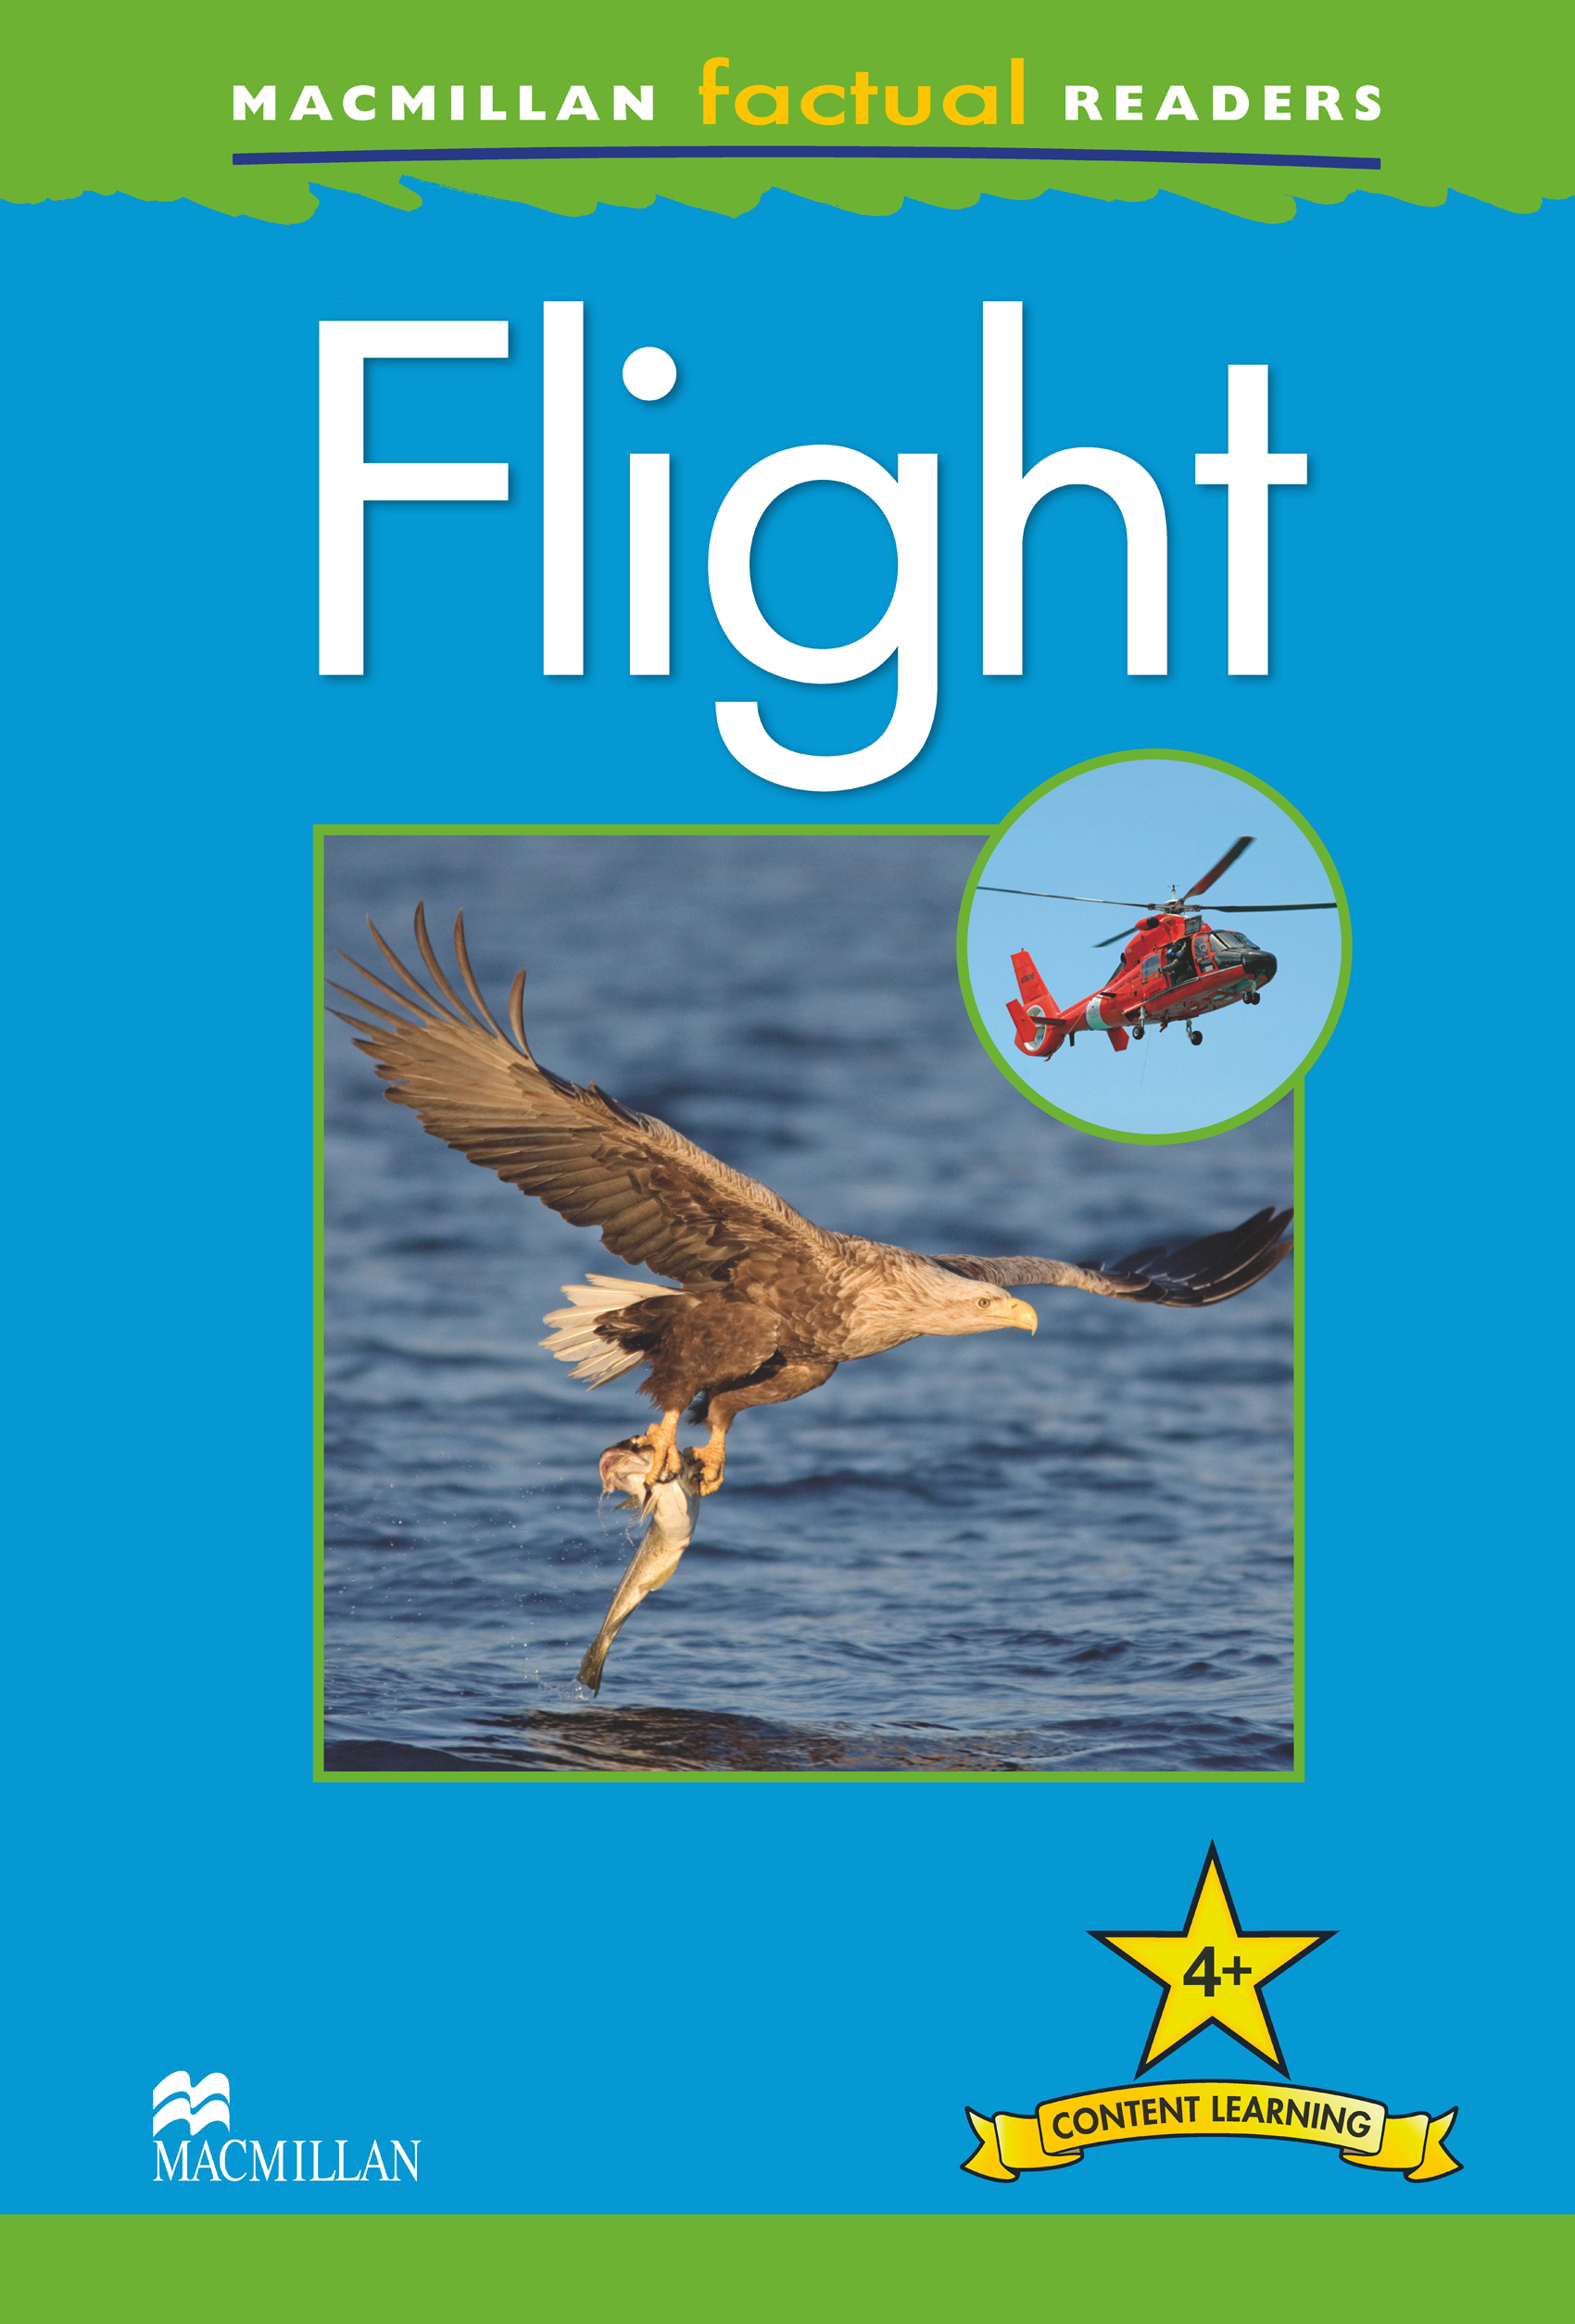 Macmillan Factual Readers: Flight